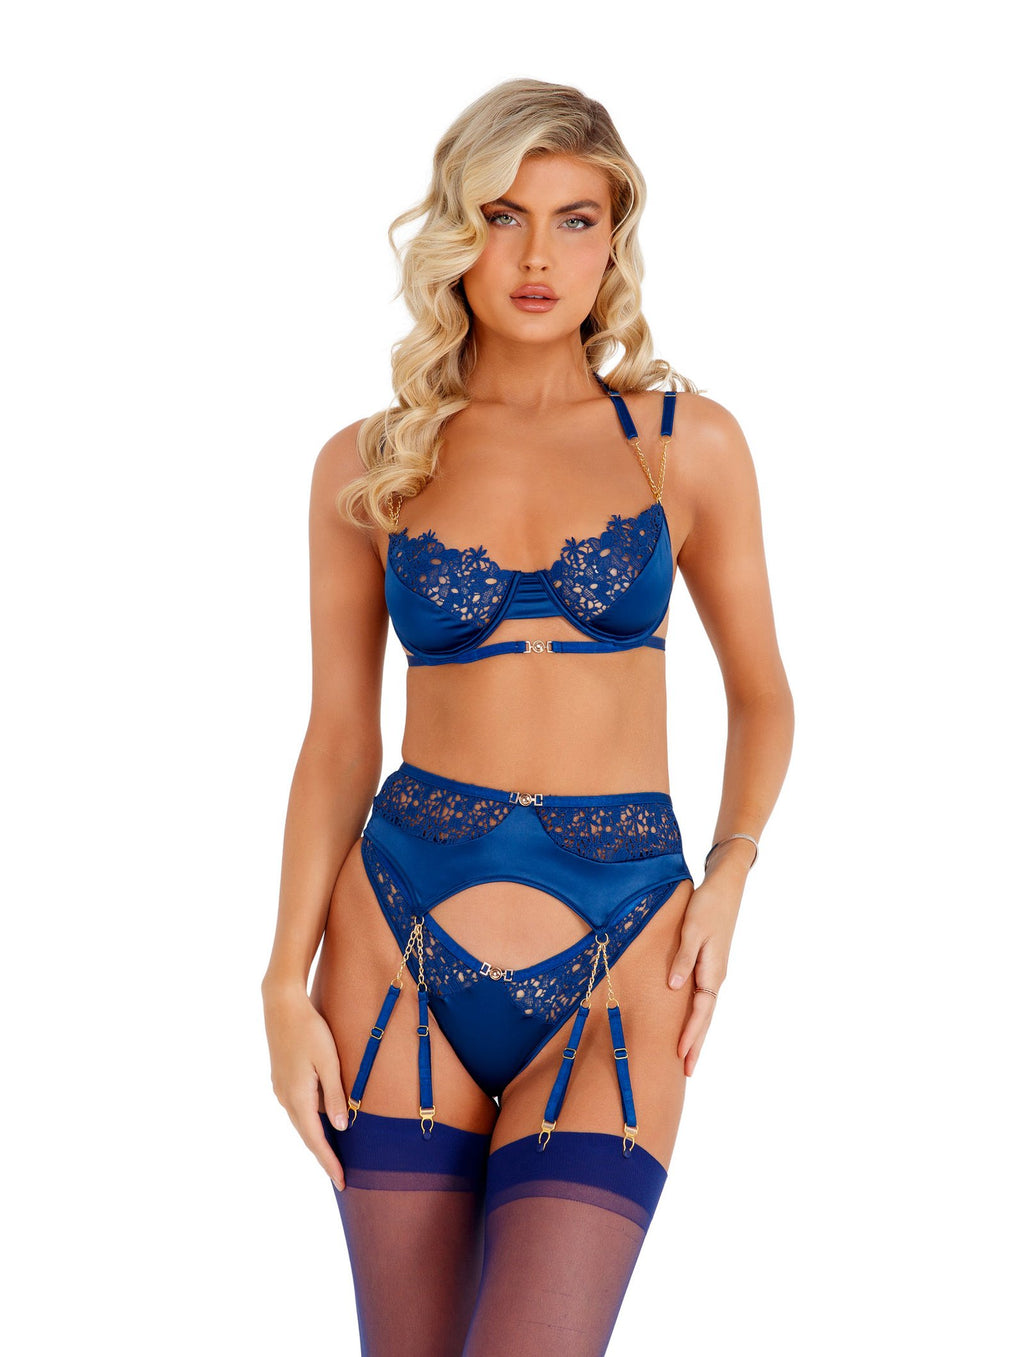 Roma Confidential LI409 - 3pc Embroidery Lace & Satin Bra Set-Bras & Bra Sets-Roma-X-Small-Navy Blue-Unspoken Fashion